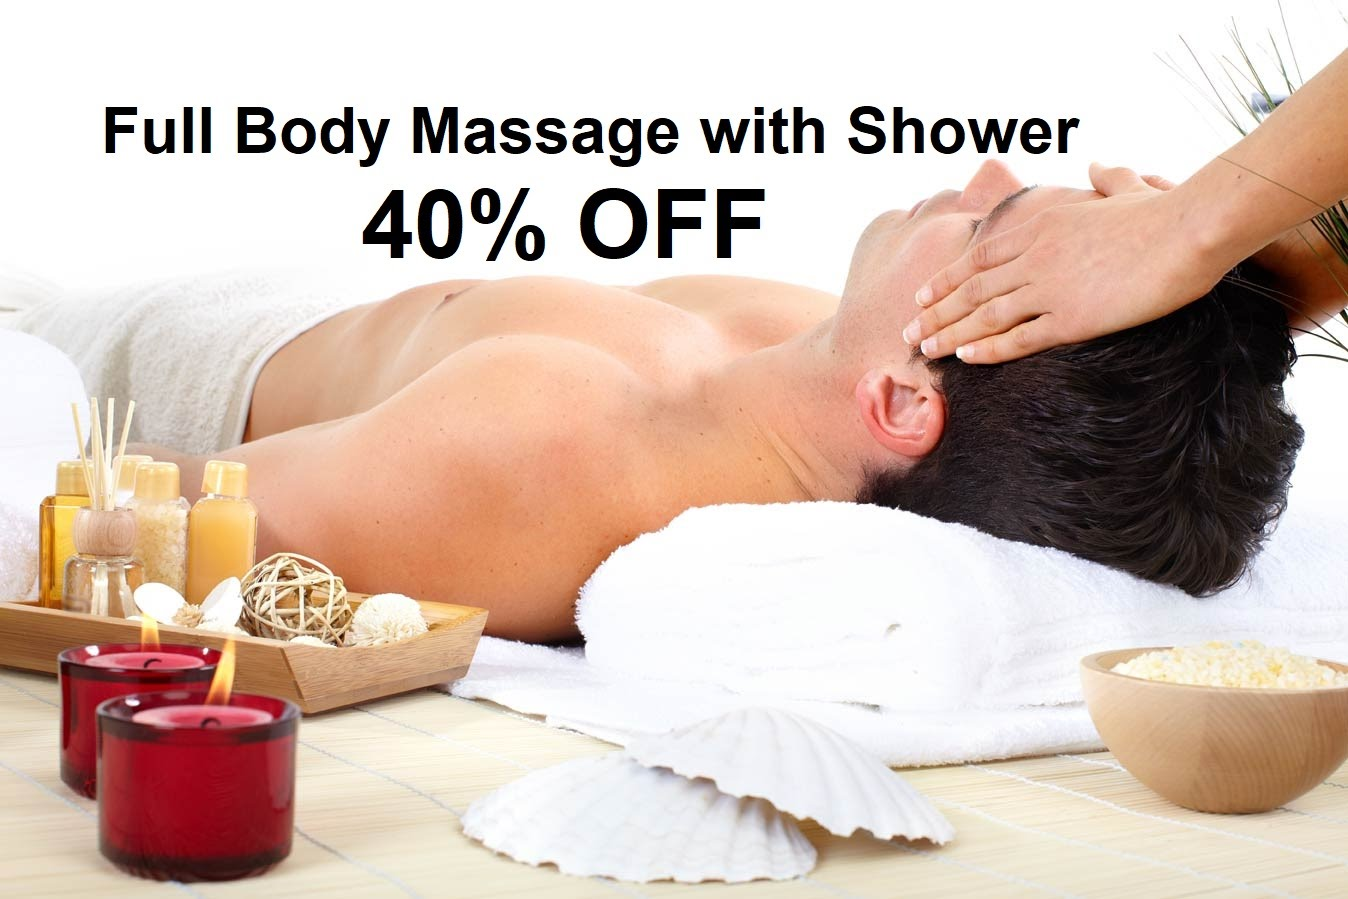 Where Can I Get Full Body Massage Amrita Spa Full Body Massage Centre In Delhi